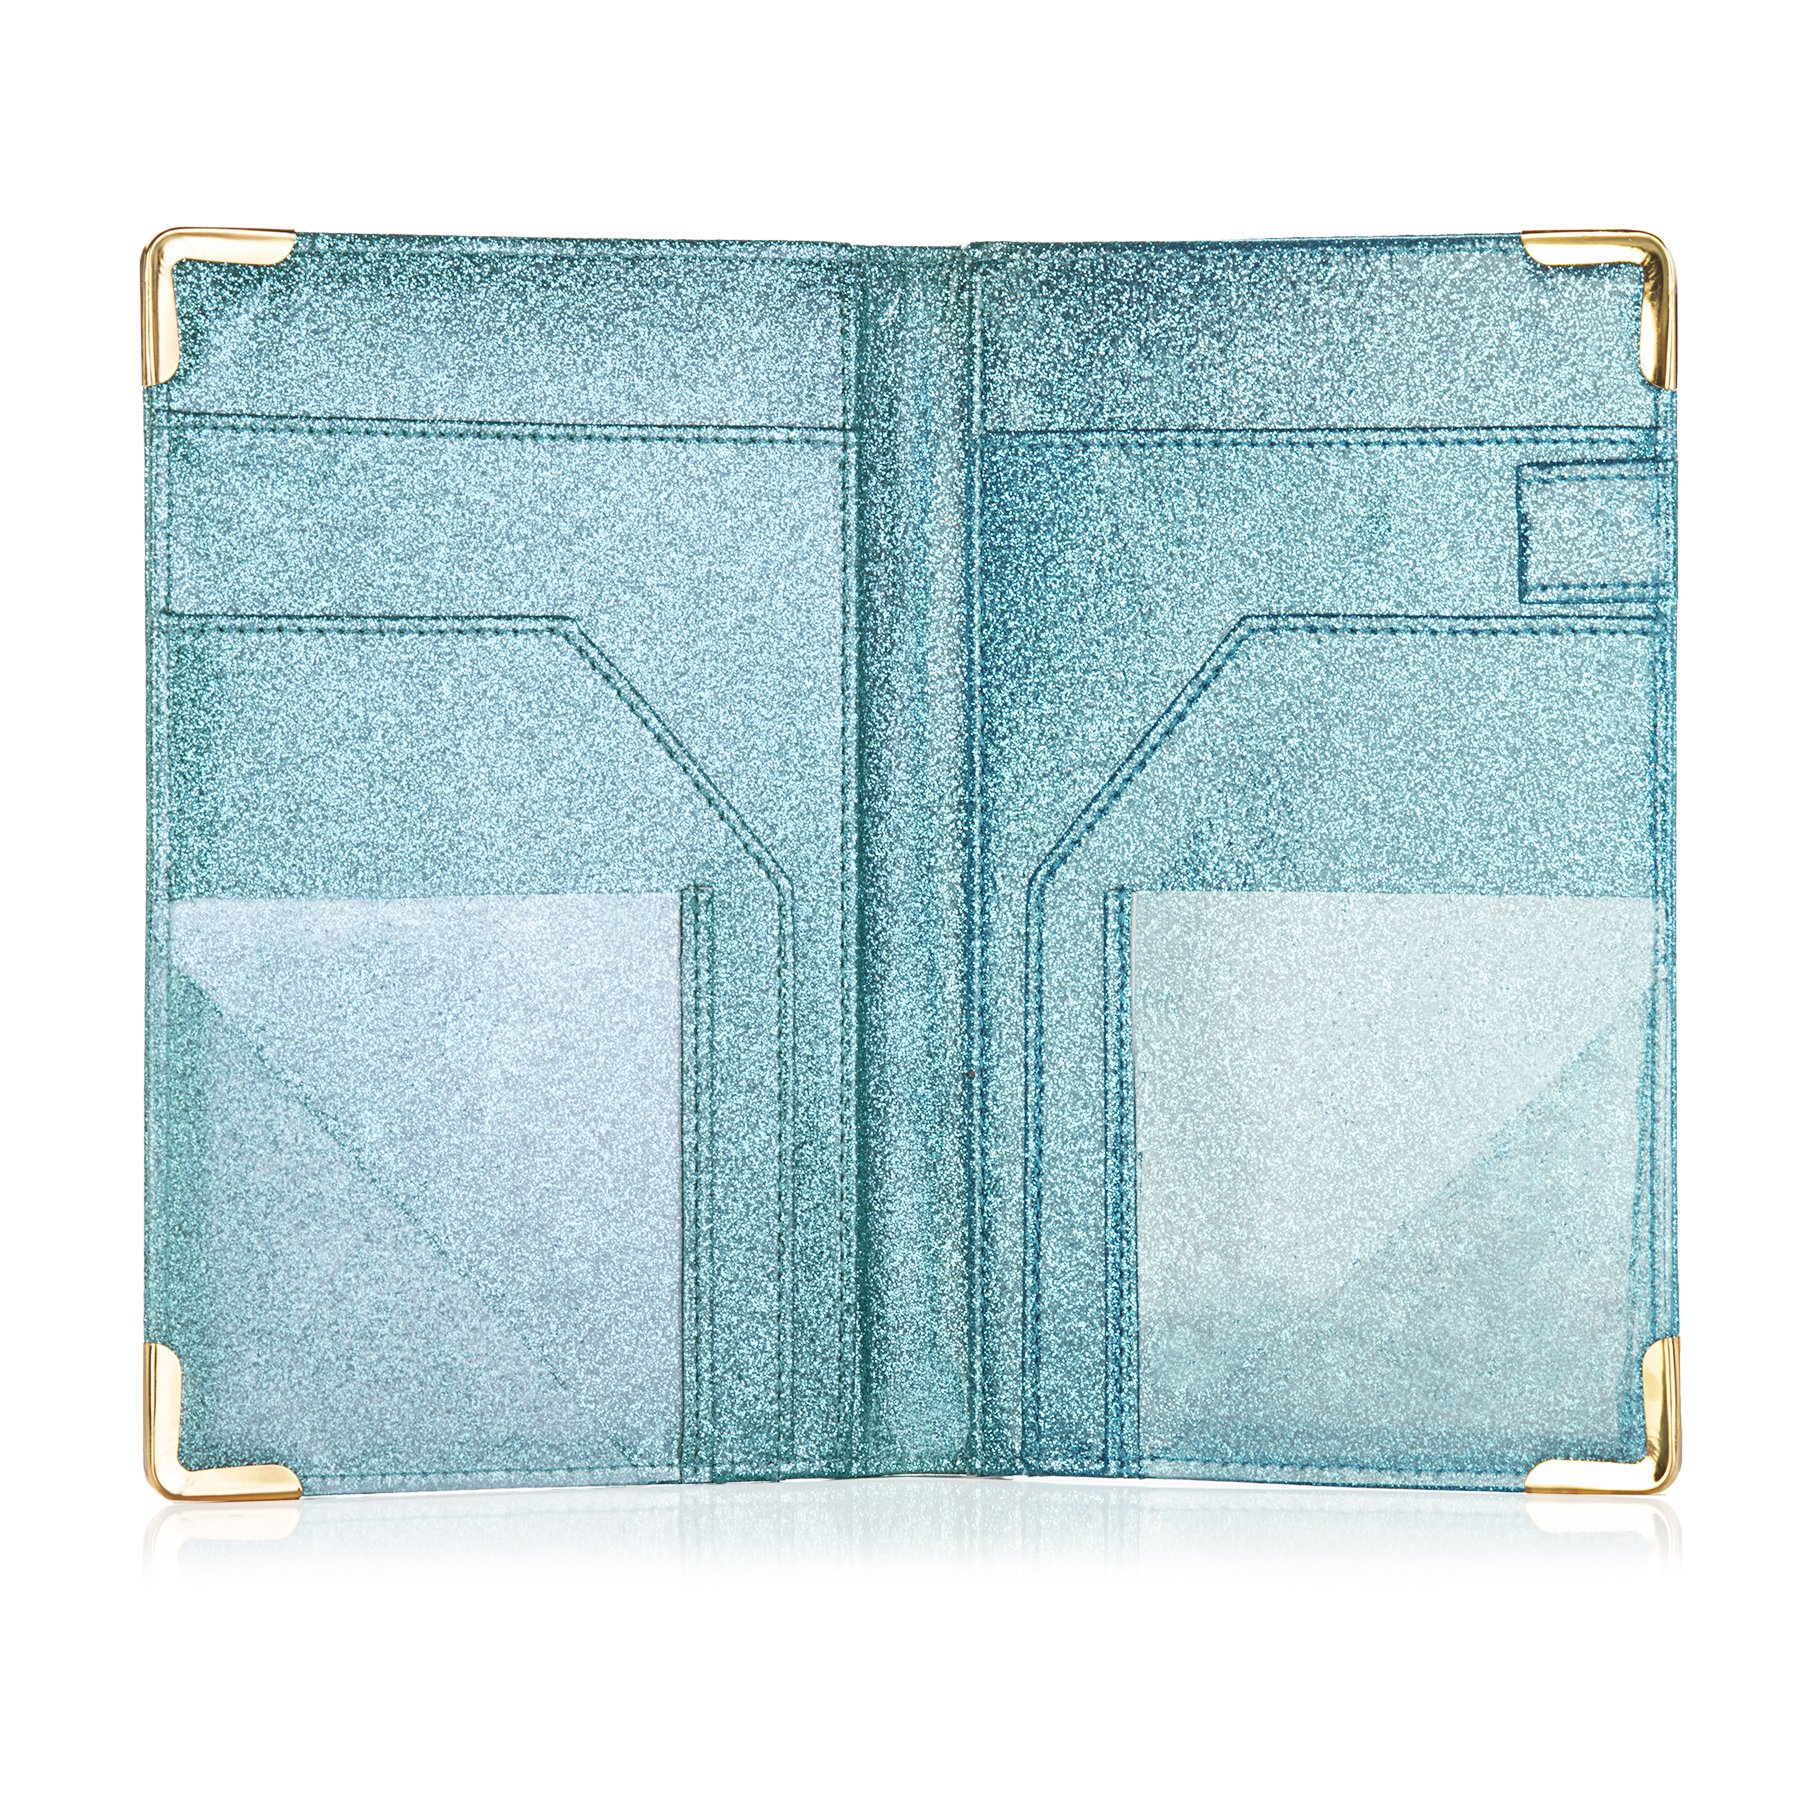 Sonic Server Dazzling Glitter Server Book and Waiter Waitress Organizer for Waitstaff | Aqua Turquoise Bling | 10 Pockets Holds Guest Checks, Money, Receipts, Order Pad with Pen Holder Loop by Sonic Server (Image #3)